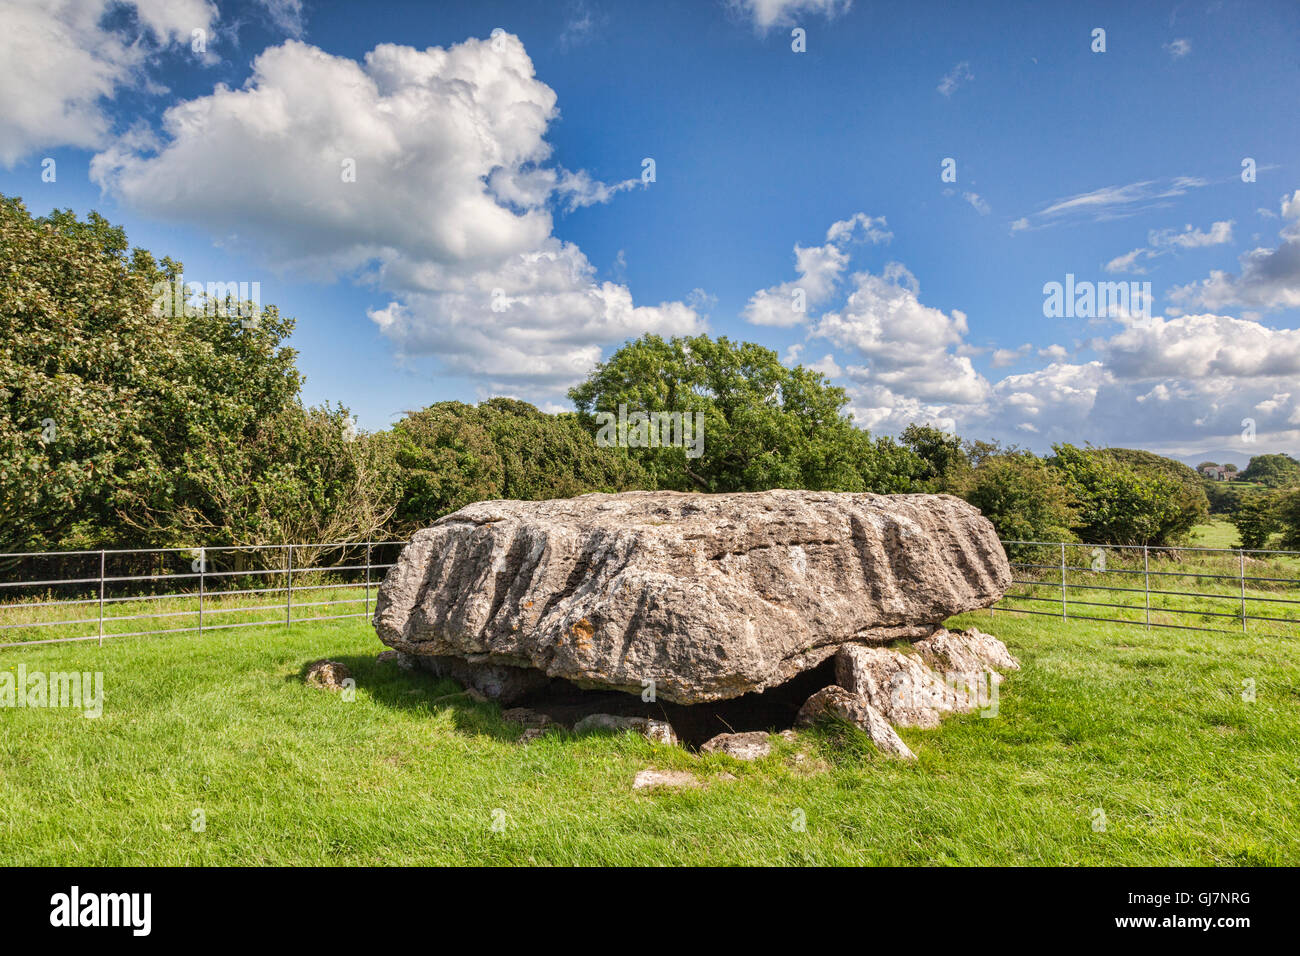 Lligwy Burial Chamber, Anglesey, Wales, UK. - Stock Image